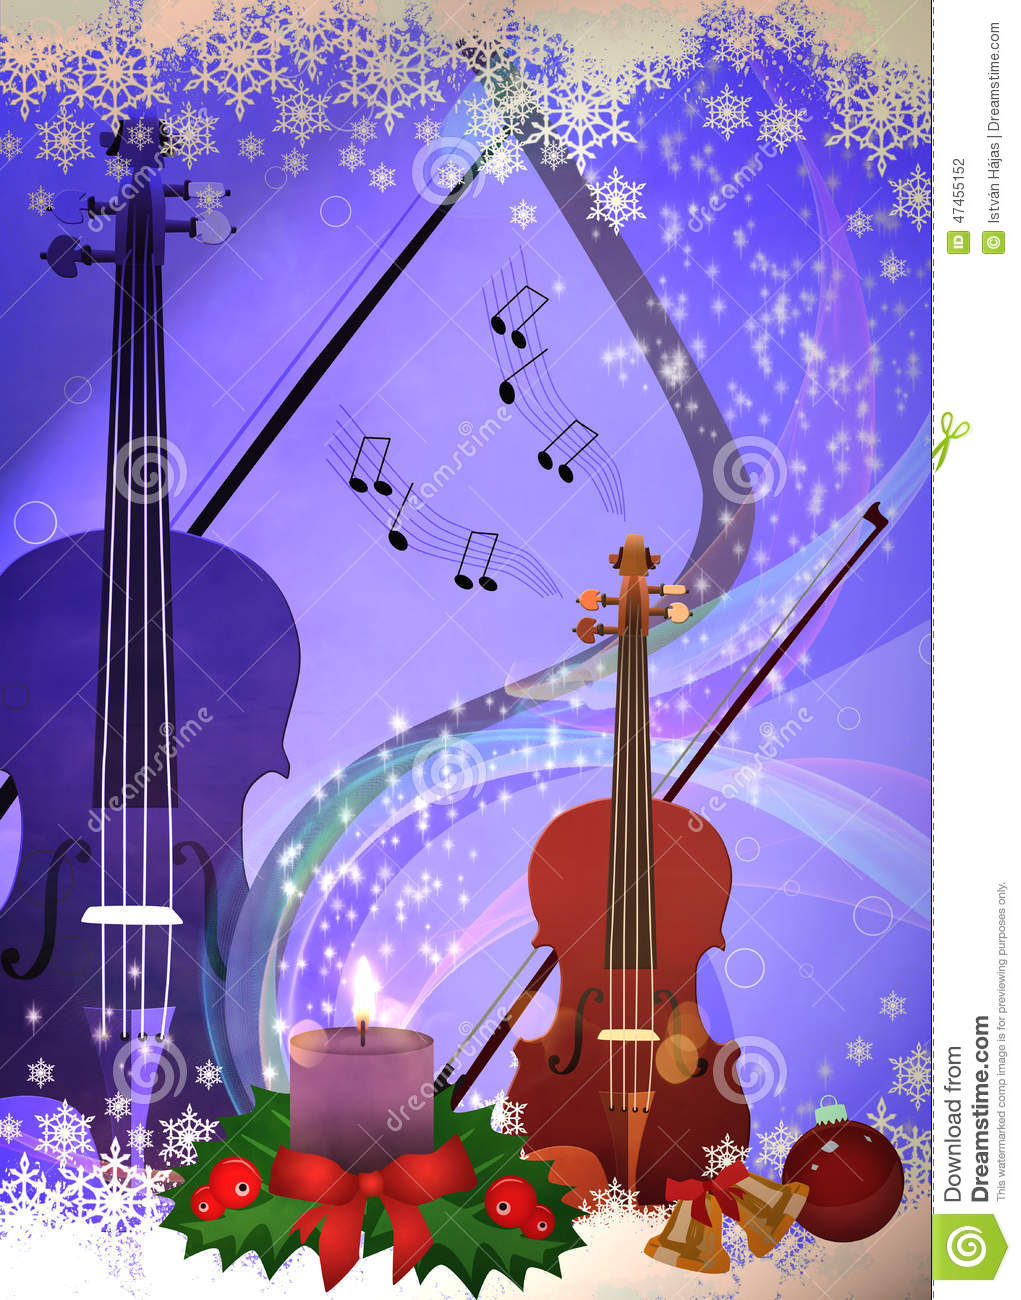 Chistmas music background stock illustration. Image of concert - 47455152